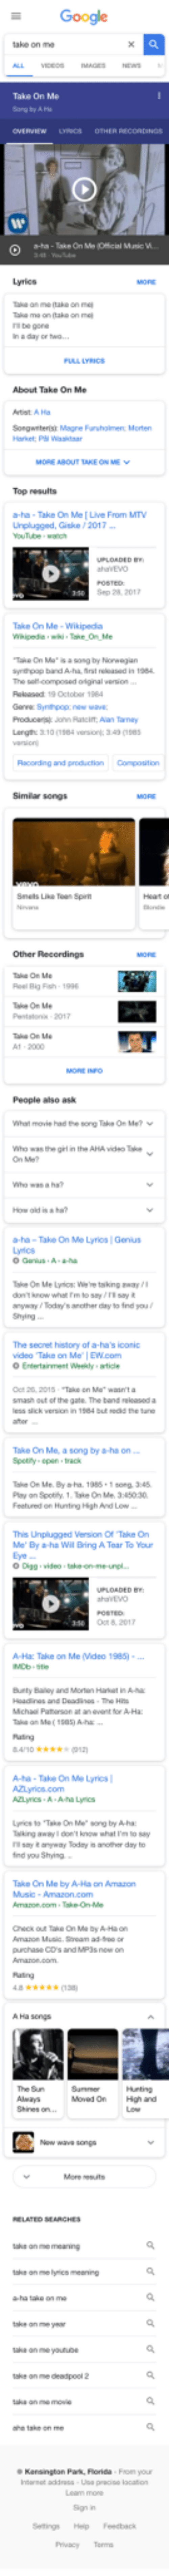 """Amazon, Mtv, and Music: a-ha -Take On Me (ical Music  taka on  Taha ma on take on me  n be gone  PULL LYRICS  Songweterist Magne Farshlme Morten  P Wasaar  Top results  a-ha- Take On Me [Live From MTV  Unplugged, Giske /2017  ep 28 20117  ake On Me-Wikipeda  Take On Ma"""" is a song by Nowagian  The soll-composed oiginal verion  Length 310 (3984 verson 343 58  Racordng and productian  Compostion  Similar songs  Heat on  Other Recordings  el Big Fish-1996  ttonis 2017  People aiso ask  what movie had Pe song Tio 0, Me?  Who was the girl in the AA video Tsk  How old is  a ha-Take On Me Lyrios Genius  nywry /Today's ancther day to fnd you  The secret history of a-ha's iconic  video Take on  O Entertainment Weeily atide  Me' 